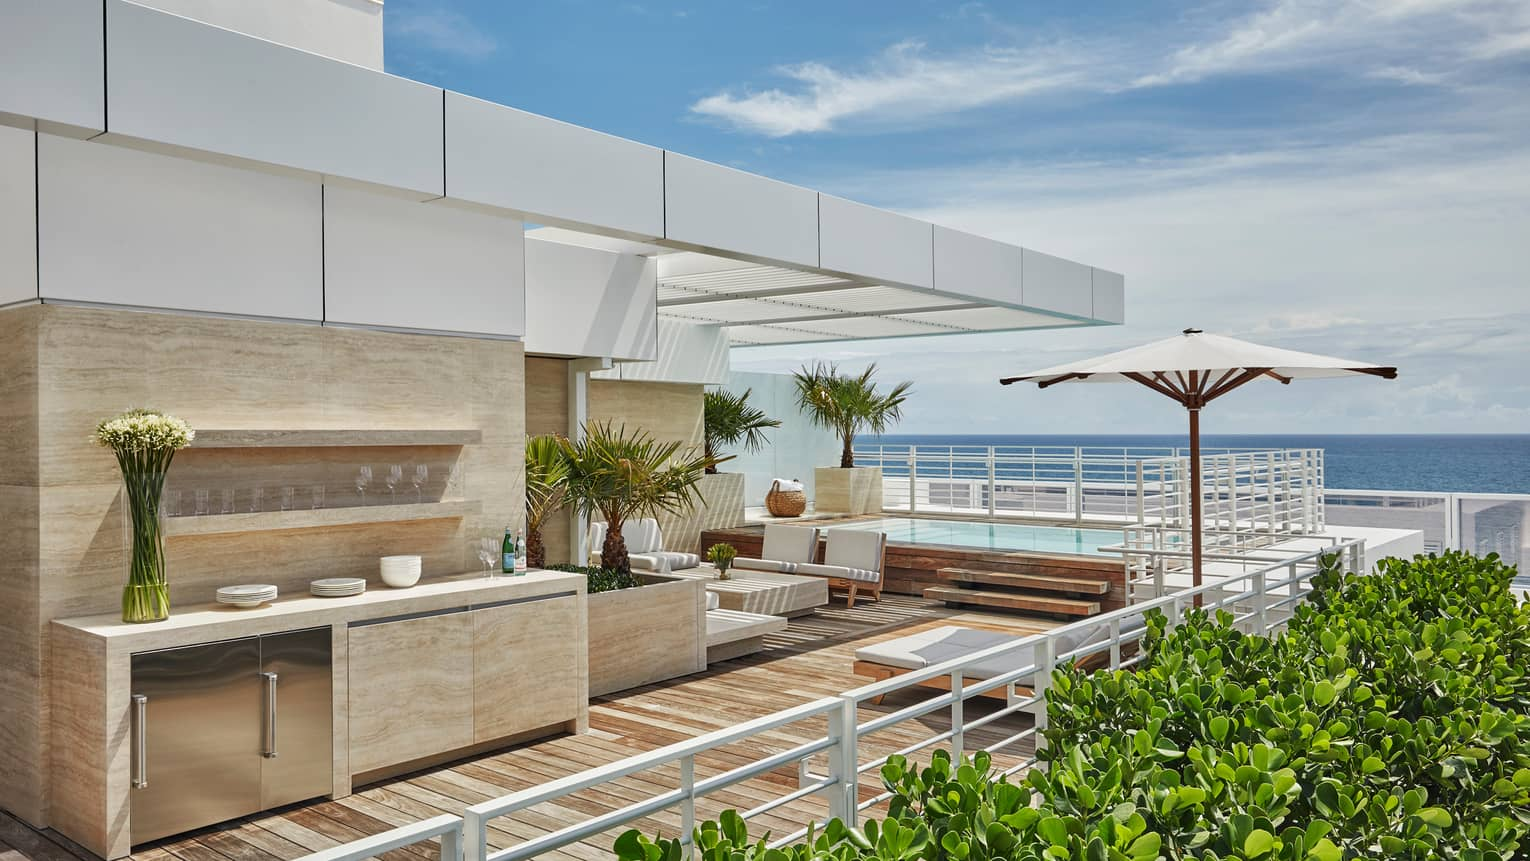 Marble outdoor bar and kitchenette with glasses, flowers, white sofas on modern rooftop patio with ocean views